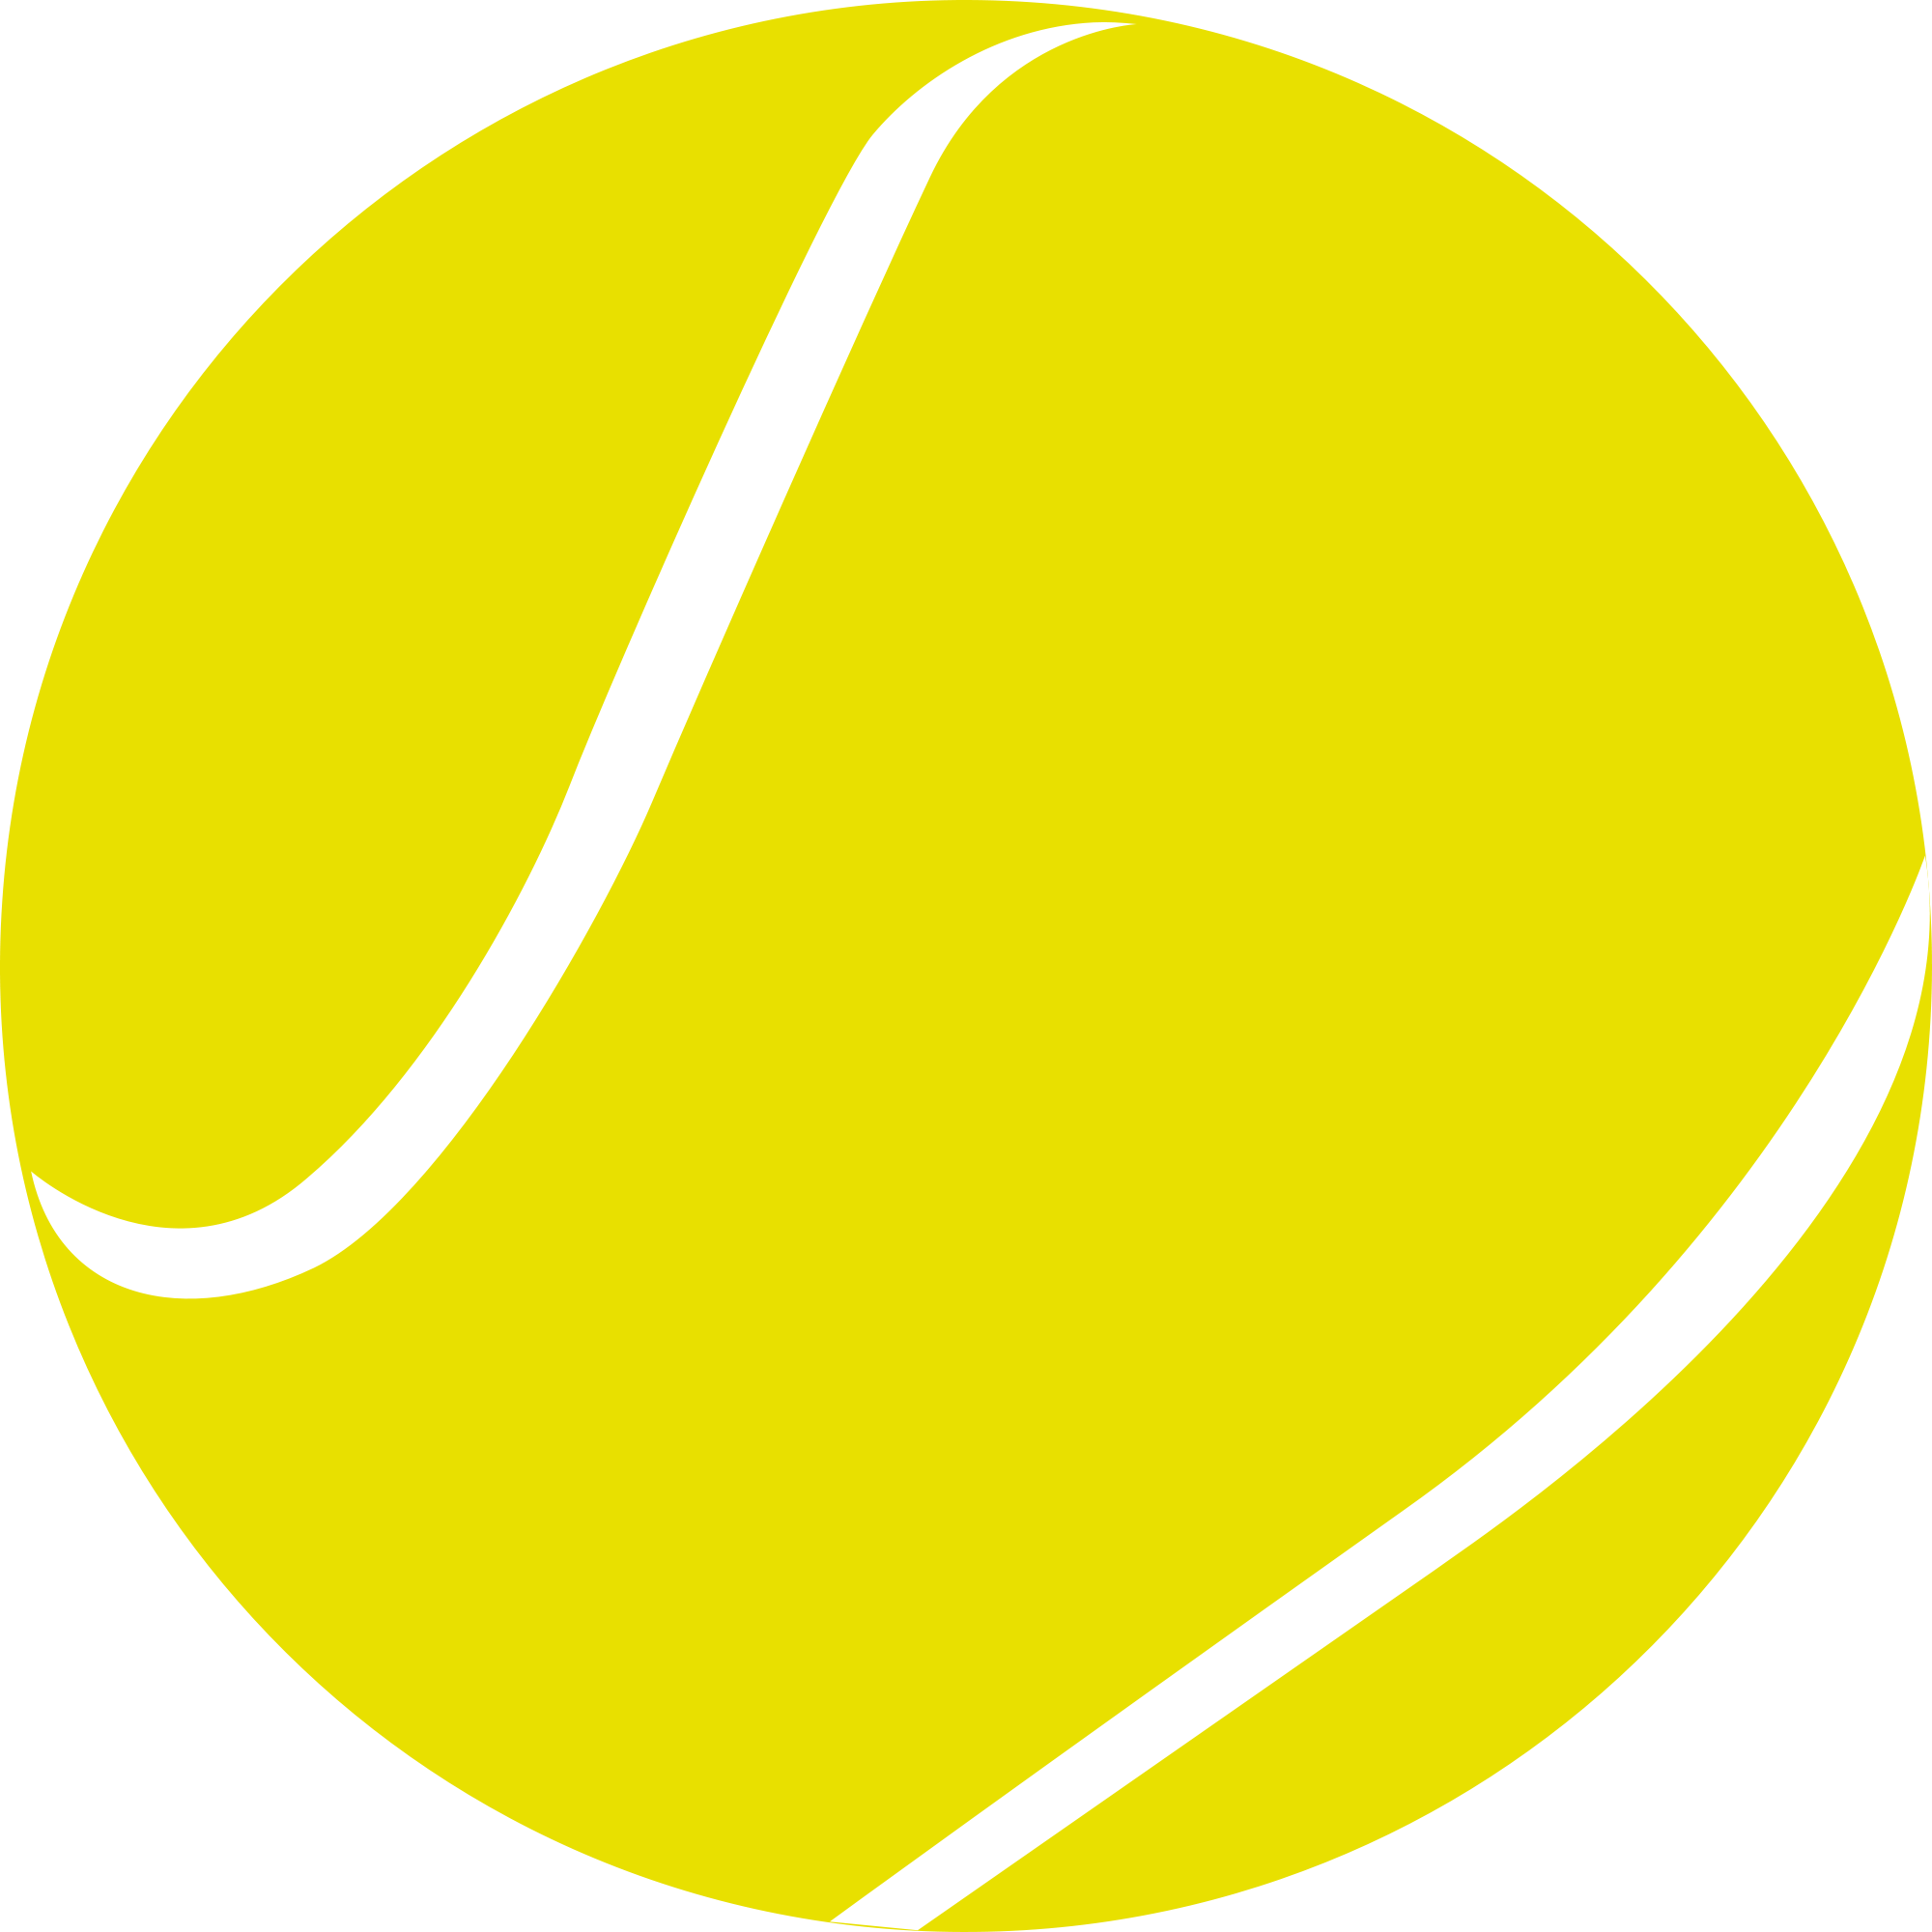 Tennis Ball clipart #12, Download drawings